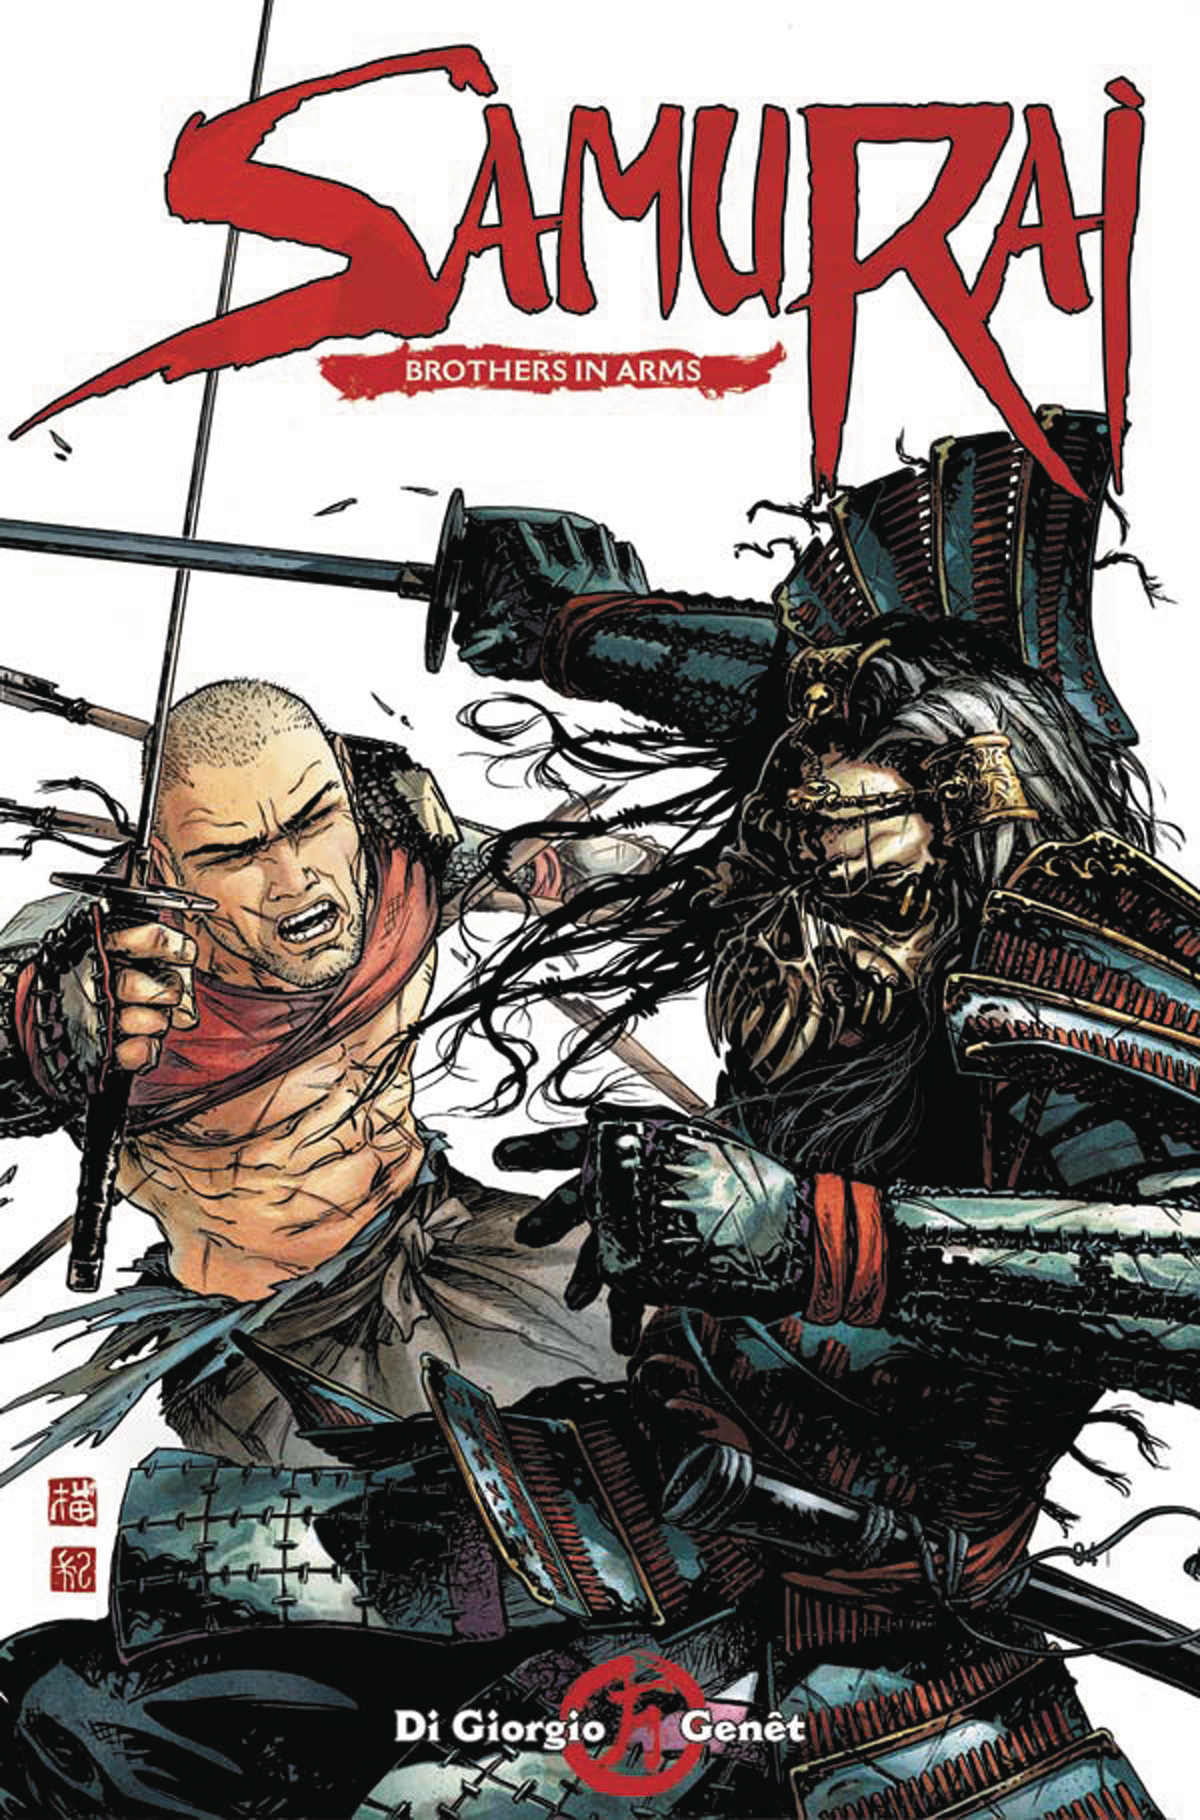 SAMURAI BROTHERS IN ARMS #1 (OF 6) CVR A GENET (MR)